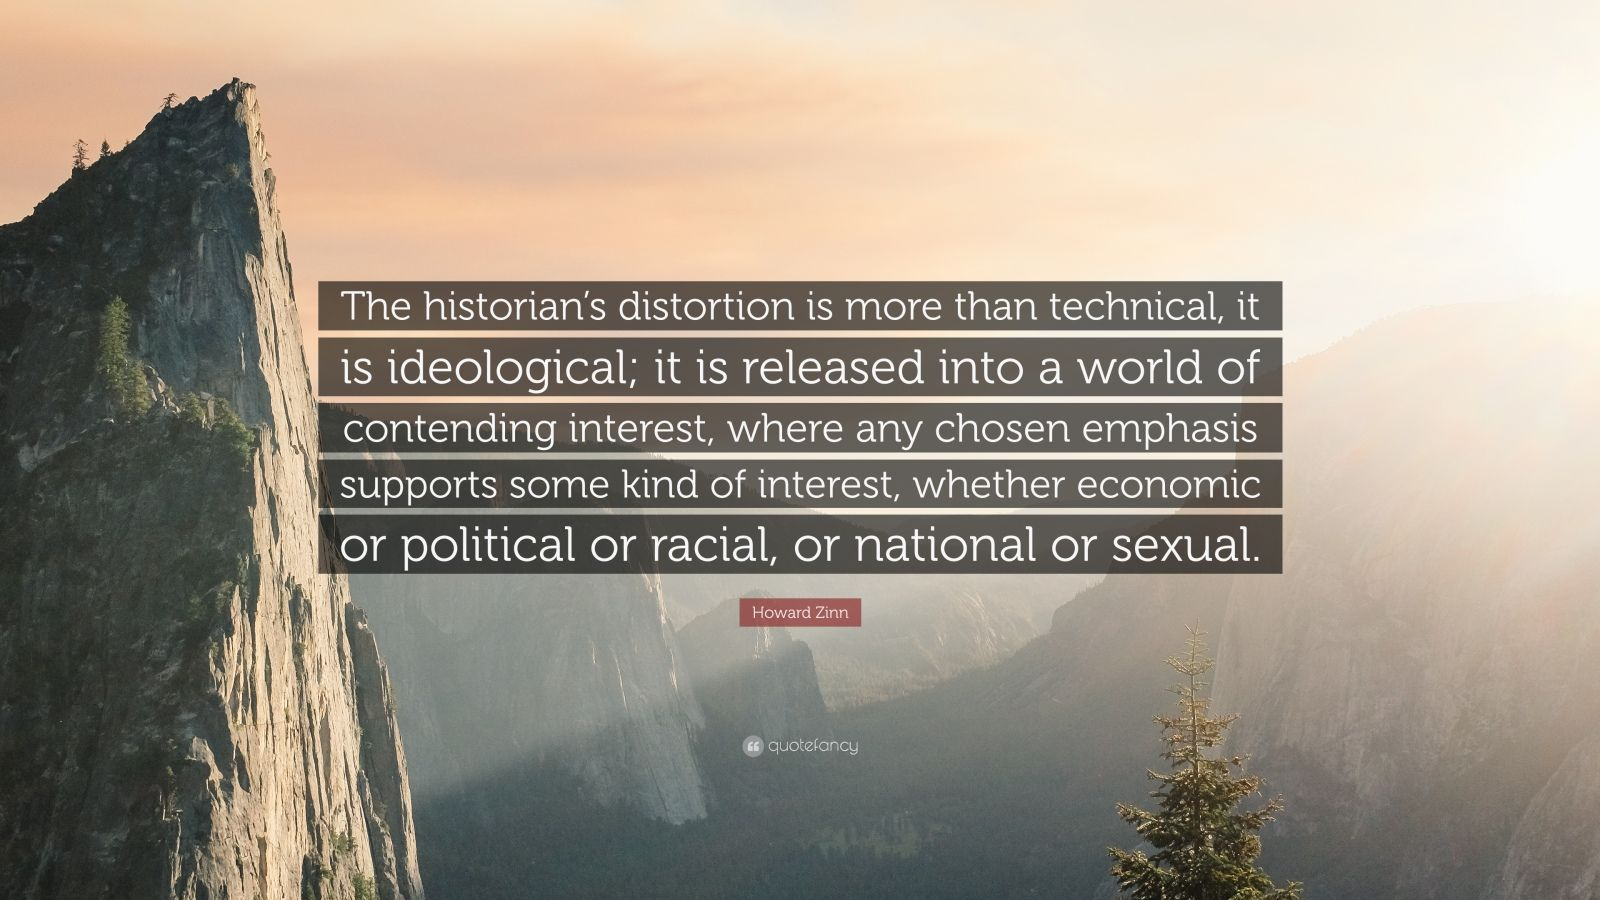 """Howard Zinn Quote: """"The historian's distortion is more than technical, it is ideological; it is released into a world of contending interest, where any chosen emphasis supports some kind of interest, whether economic or political or racial, or national or sexual."""""""